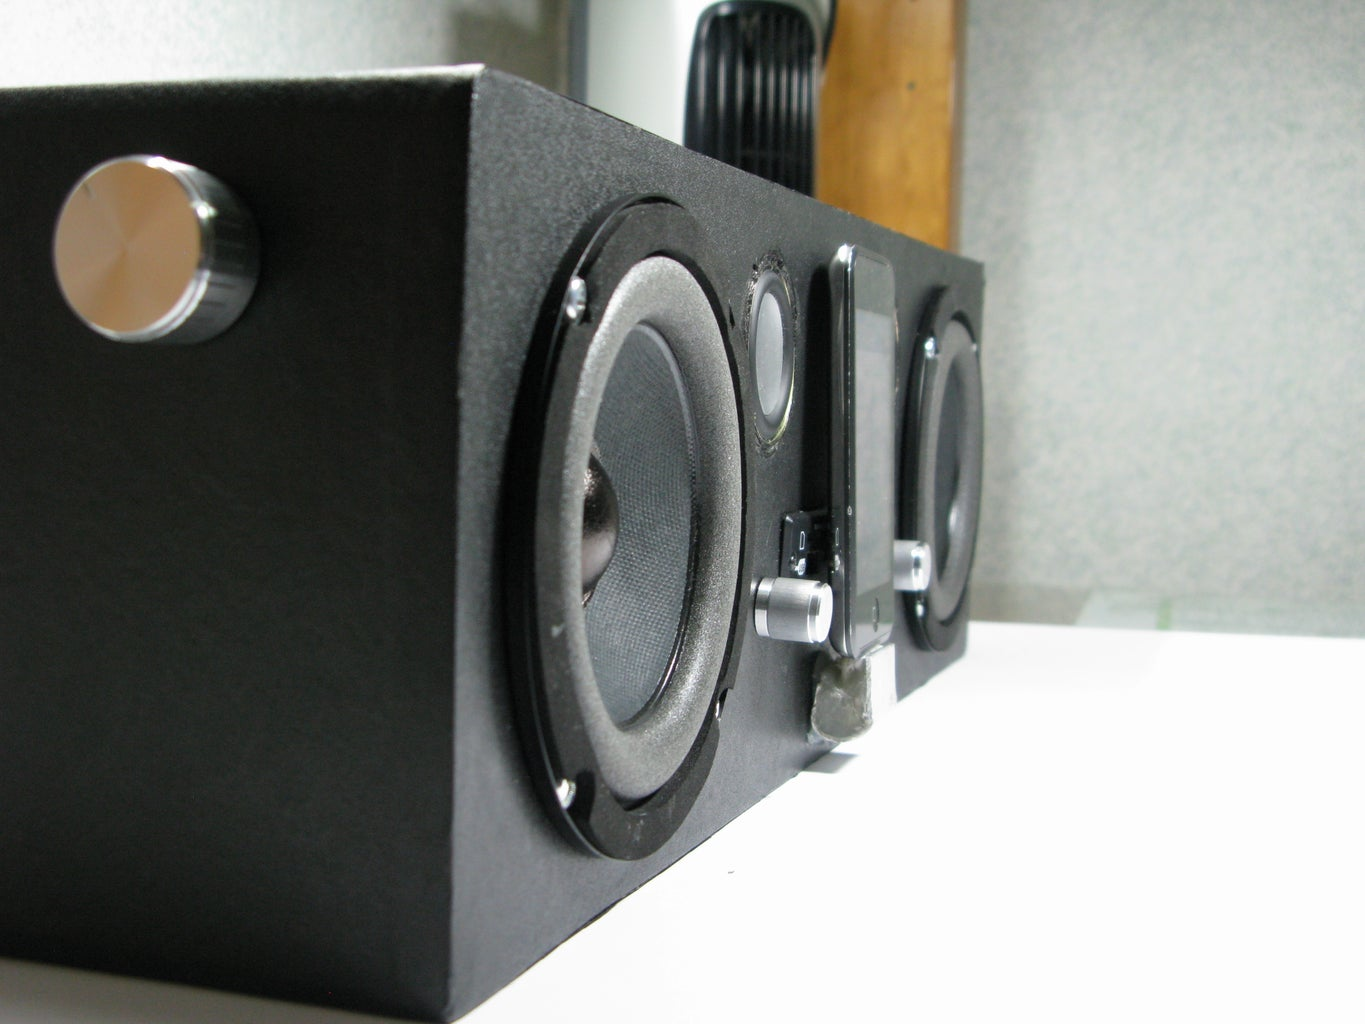 DIY Portable Boombox (from SCRATCH!)